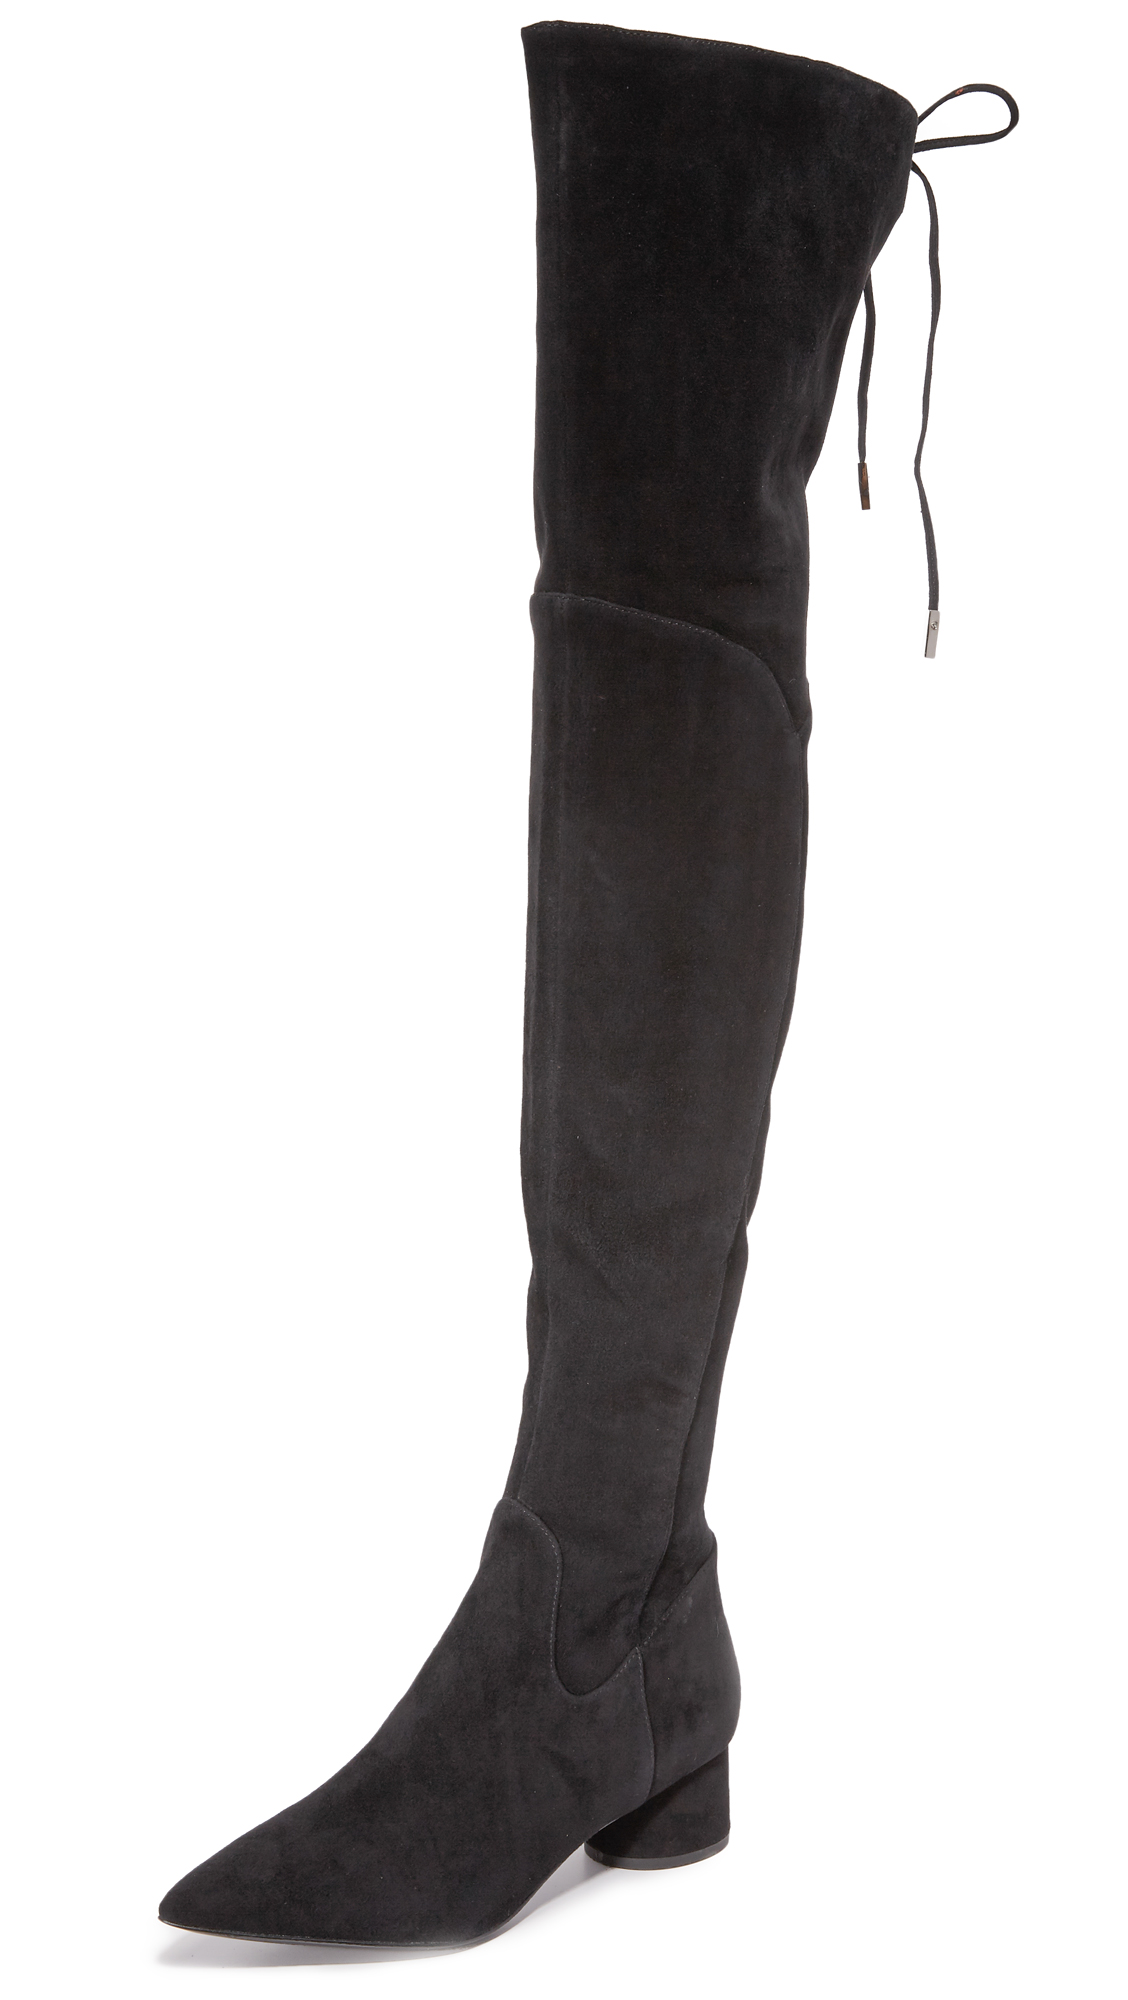 Sigerson Morrison Zetan Over The Knee Boots - Black